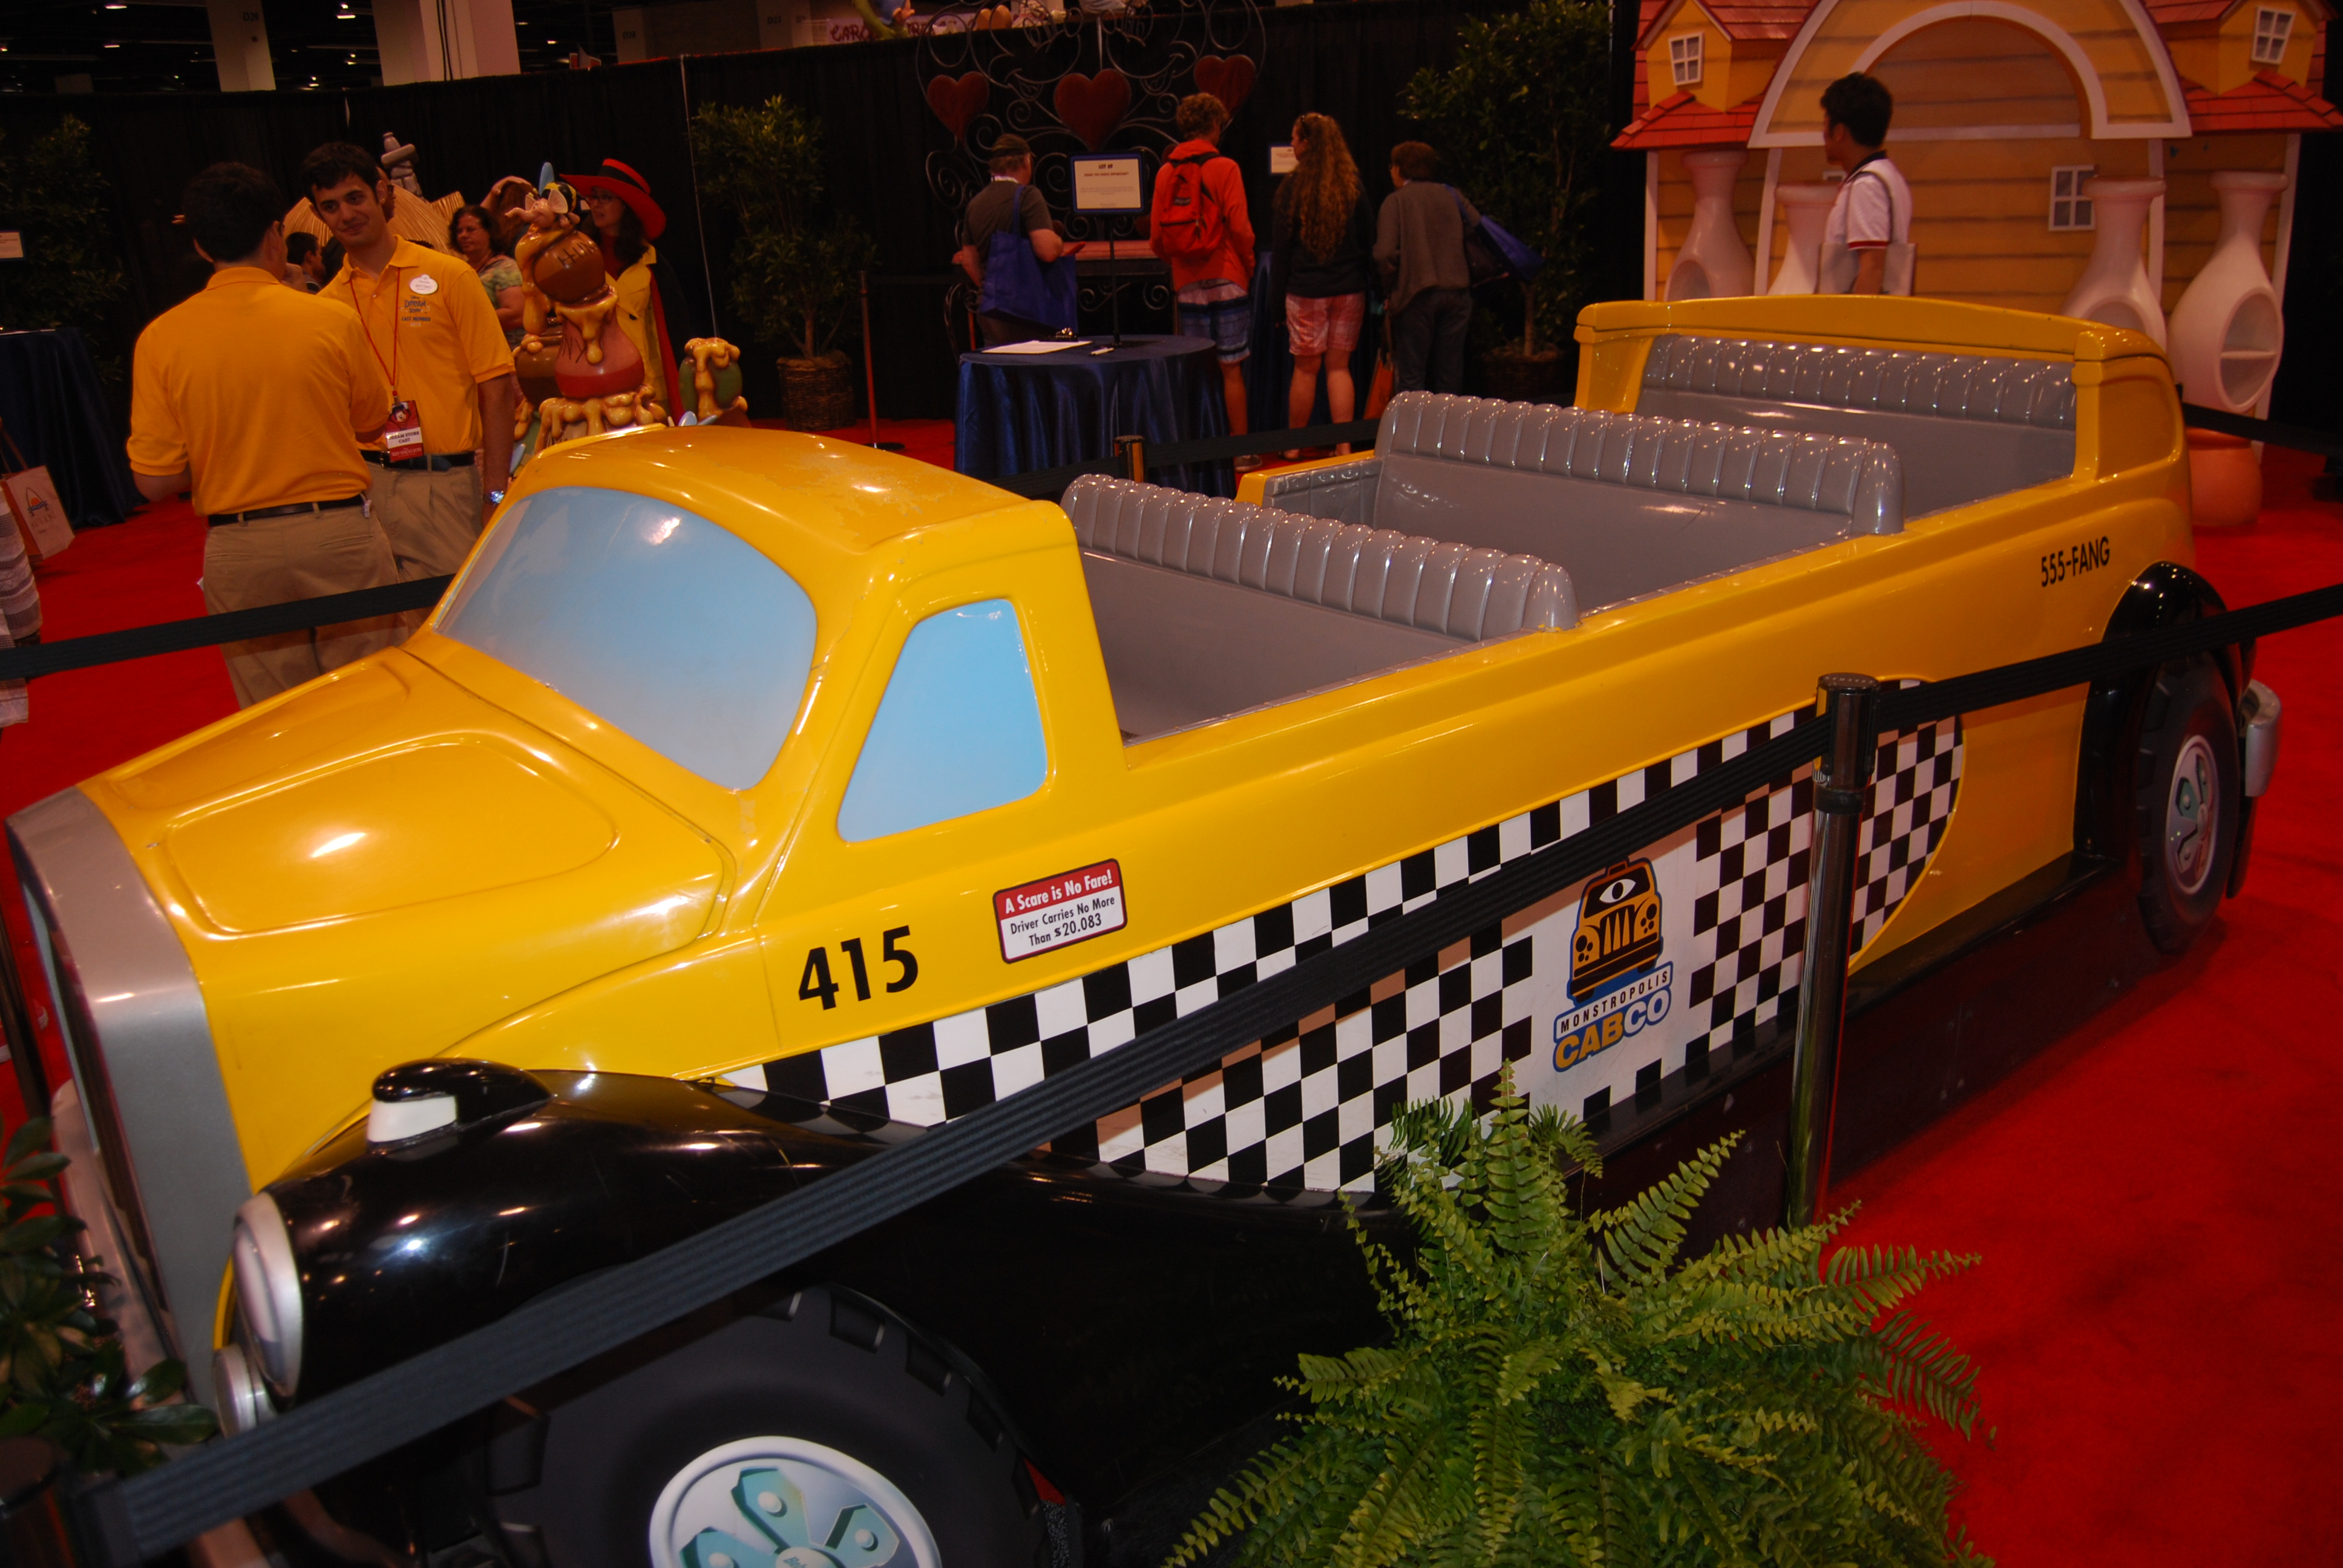 D23 Expo Silent Auction Photos and Prices